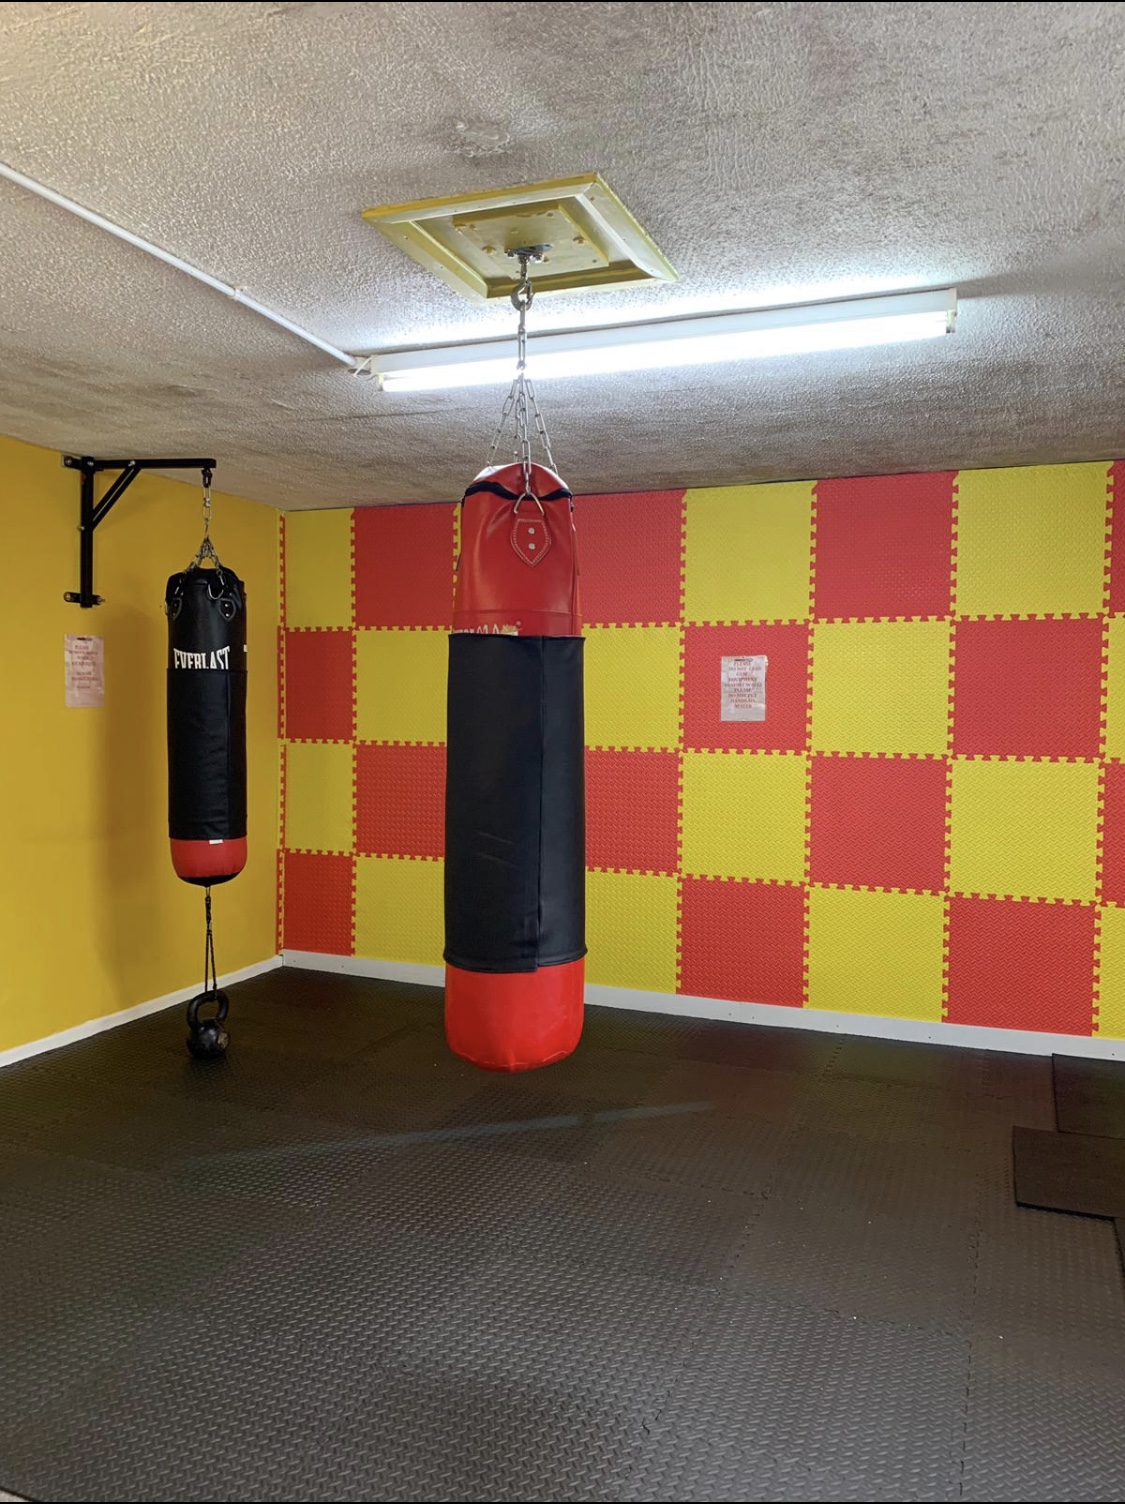 https://0501.nccdn.net/4_2/000/000/081/4ce/boxing-room.jpg